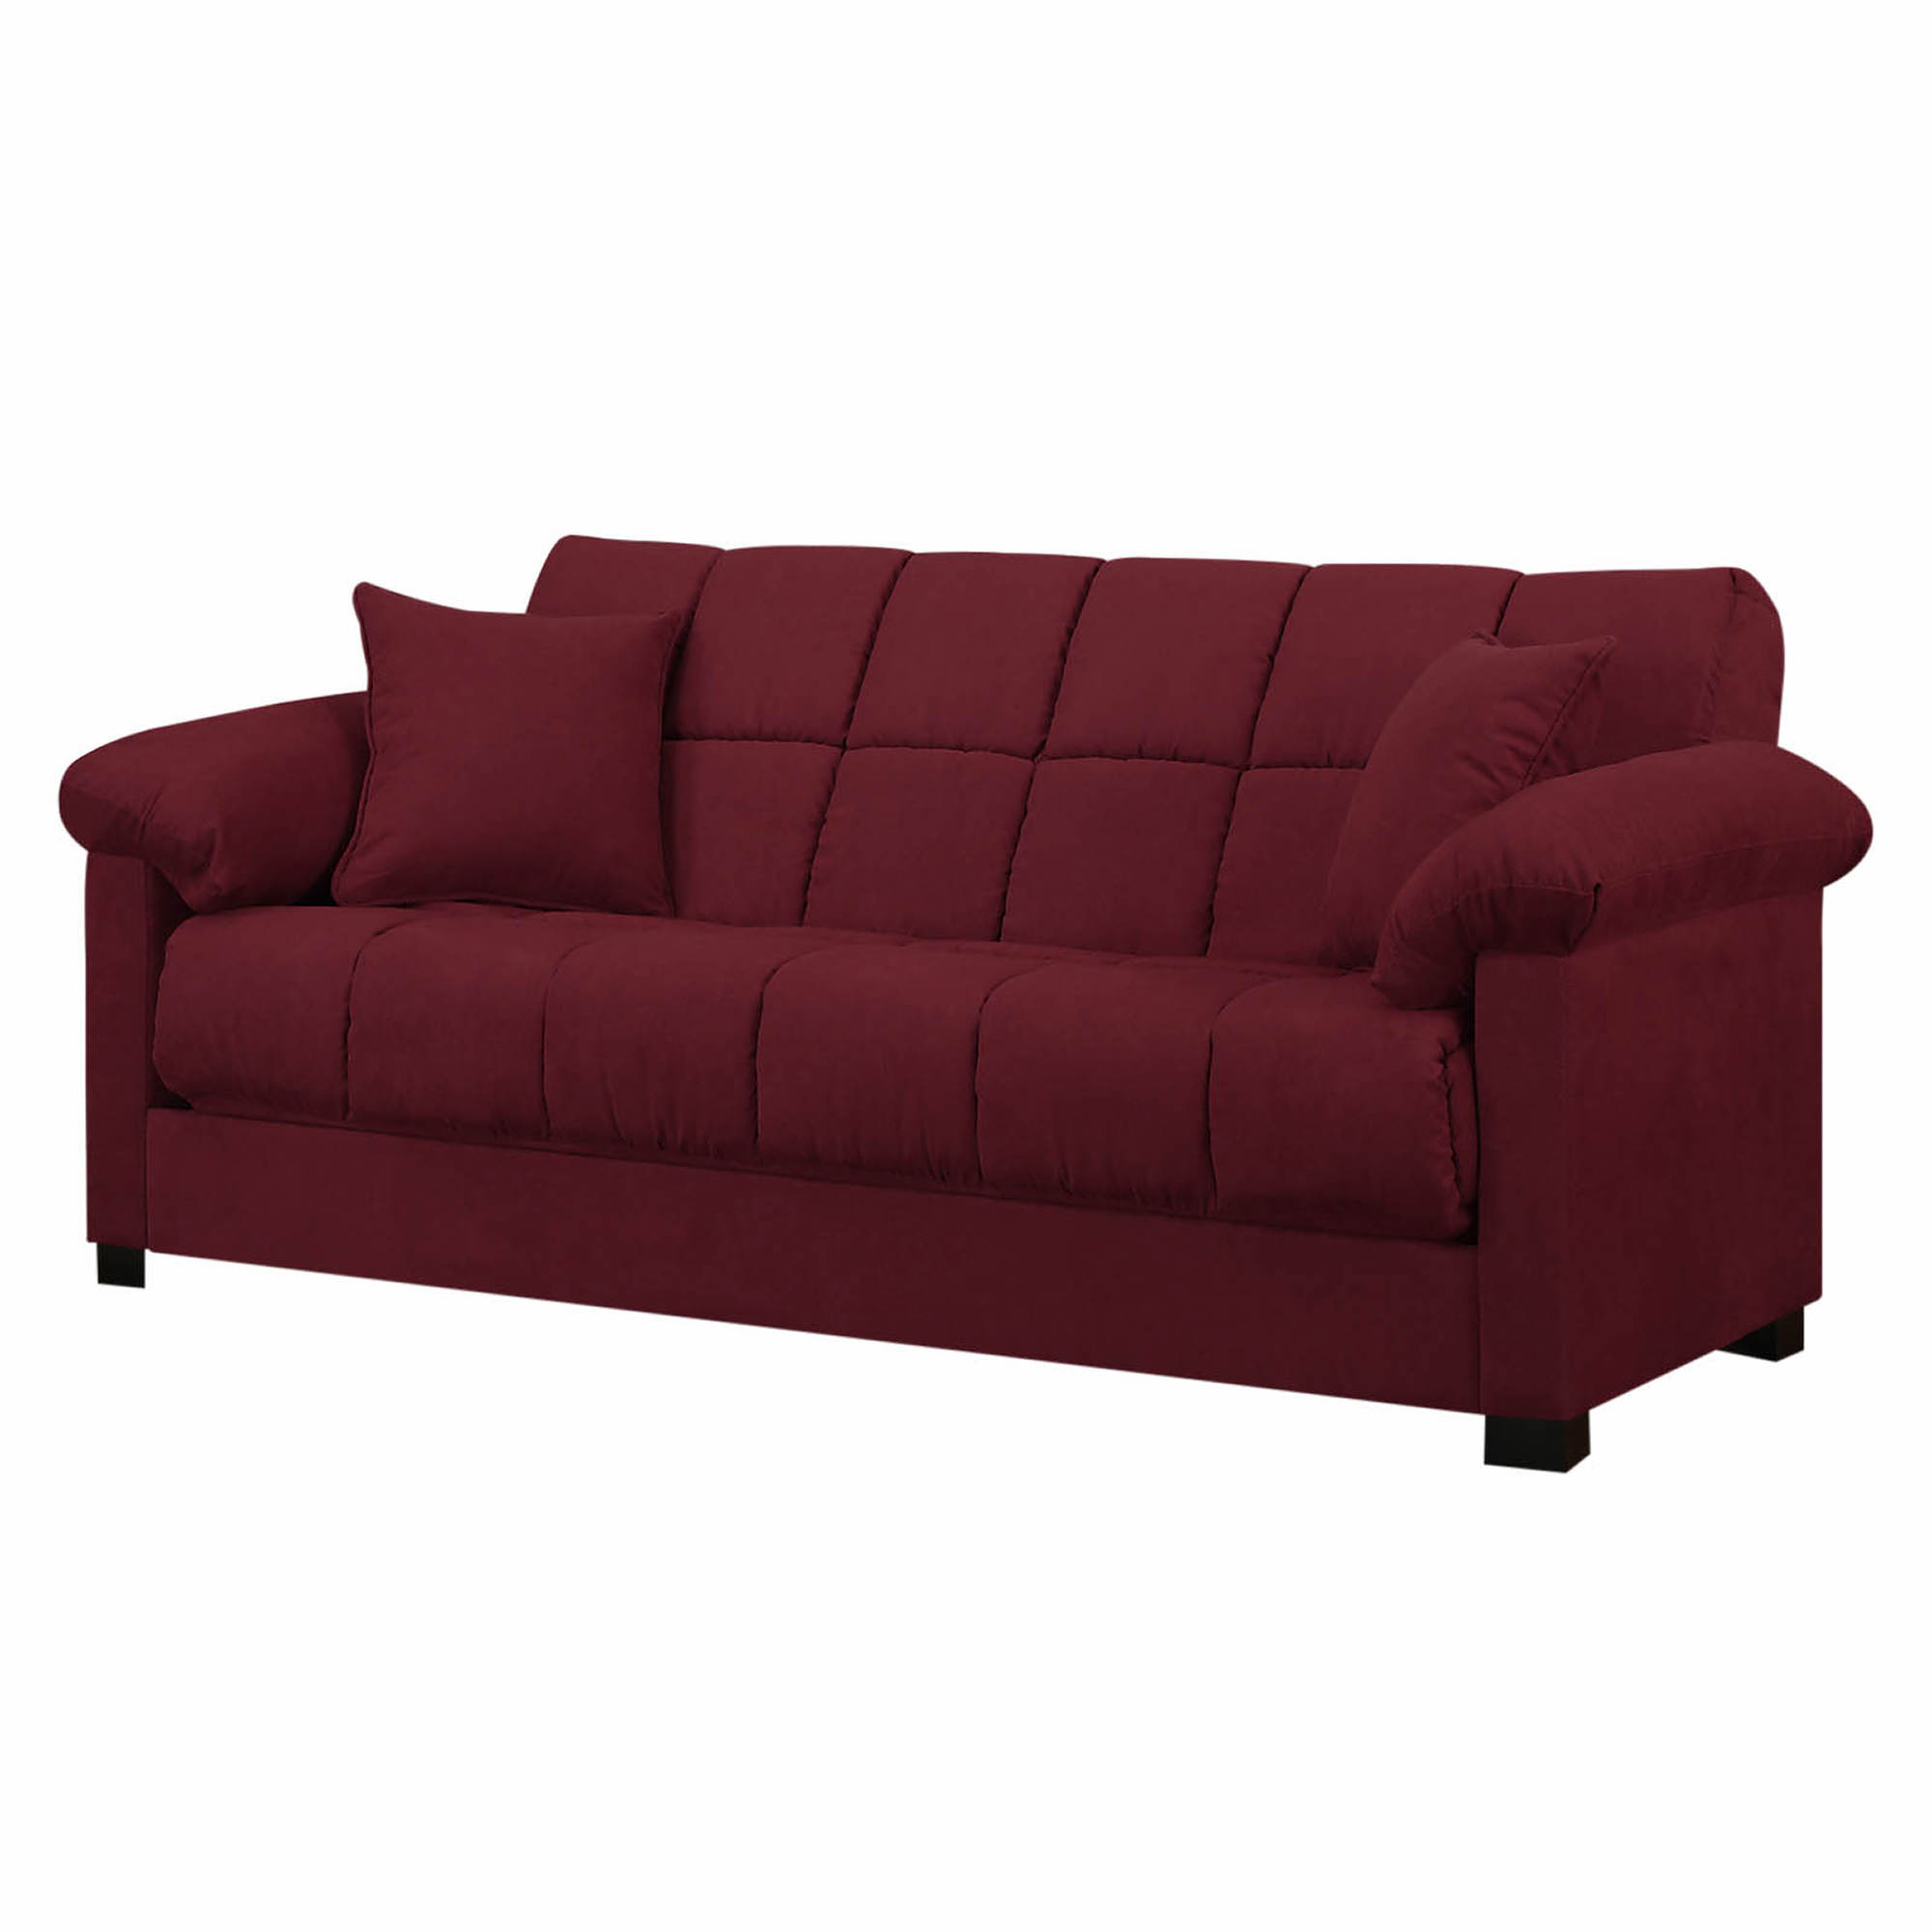 Convert A Couch Sleeper Sofa Convert Twin Bed To Sofa Product Reviews Tyler Tan Microfiber Thesofa